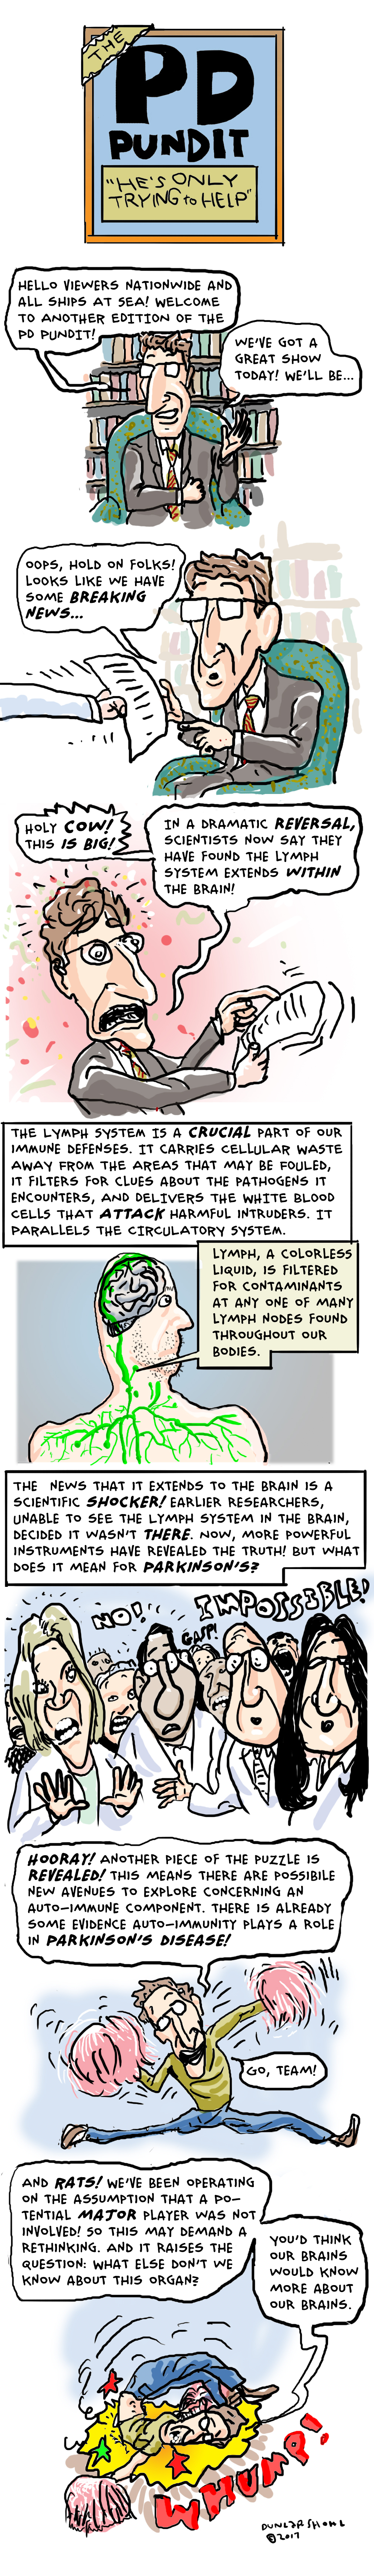 The PD Pundit: The Lymphatic System